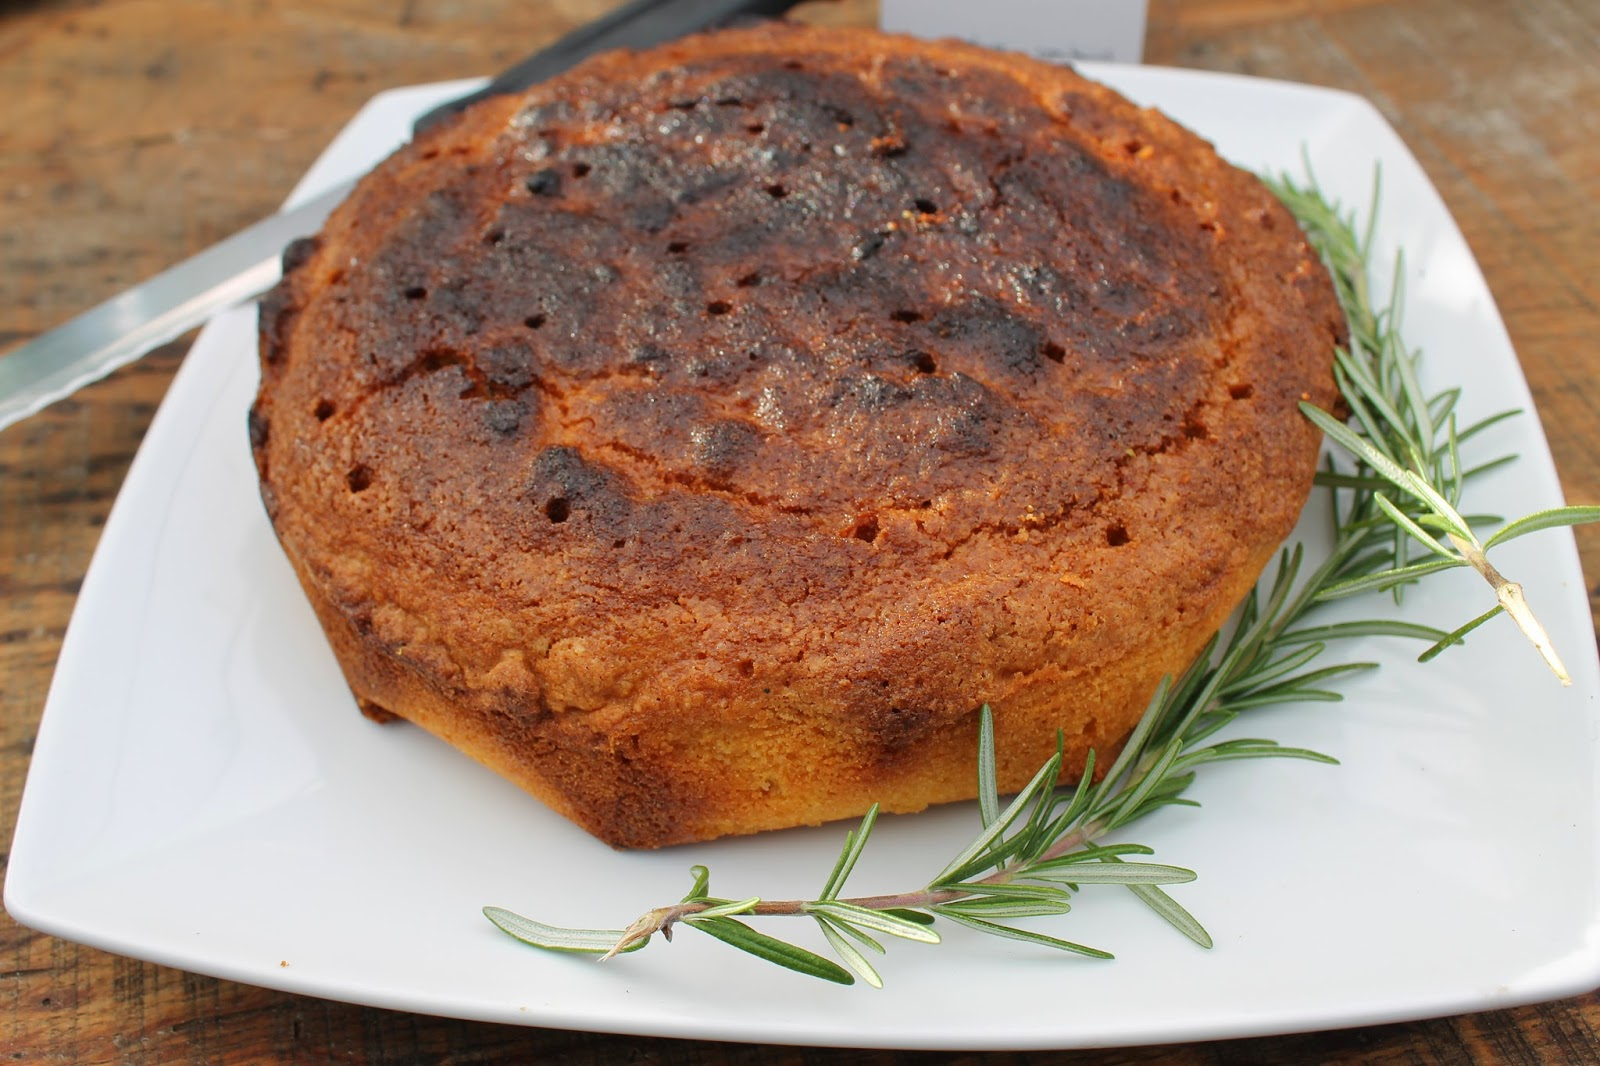 Gluten-free lemon and rosemary polenta cake